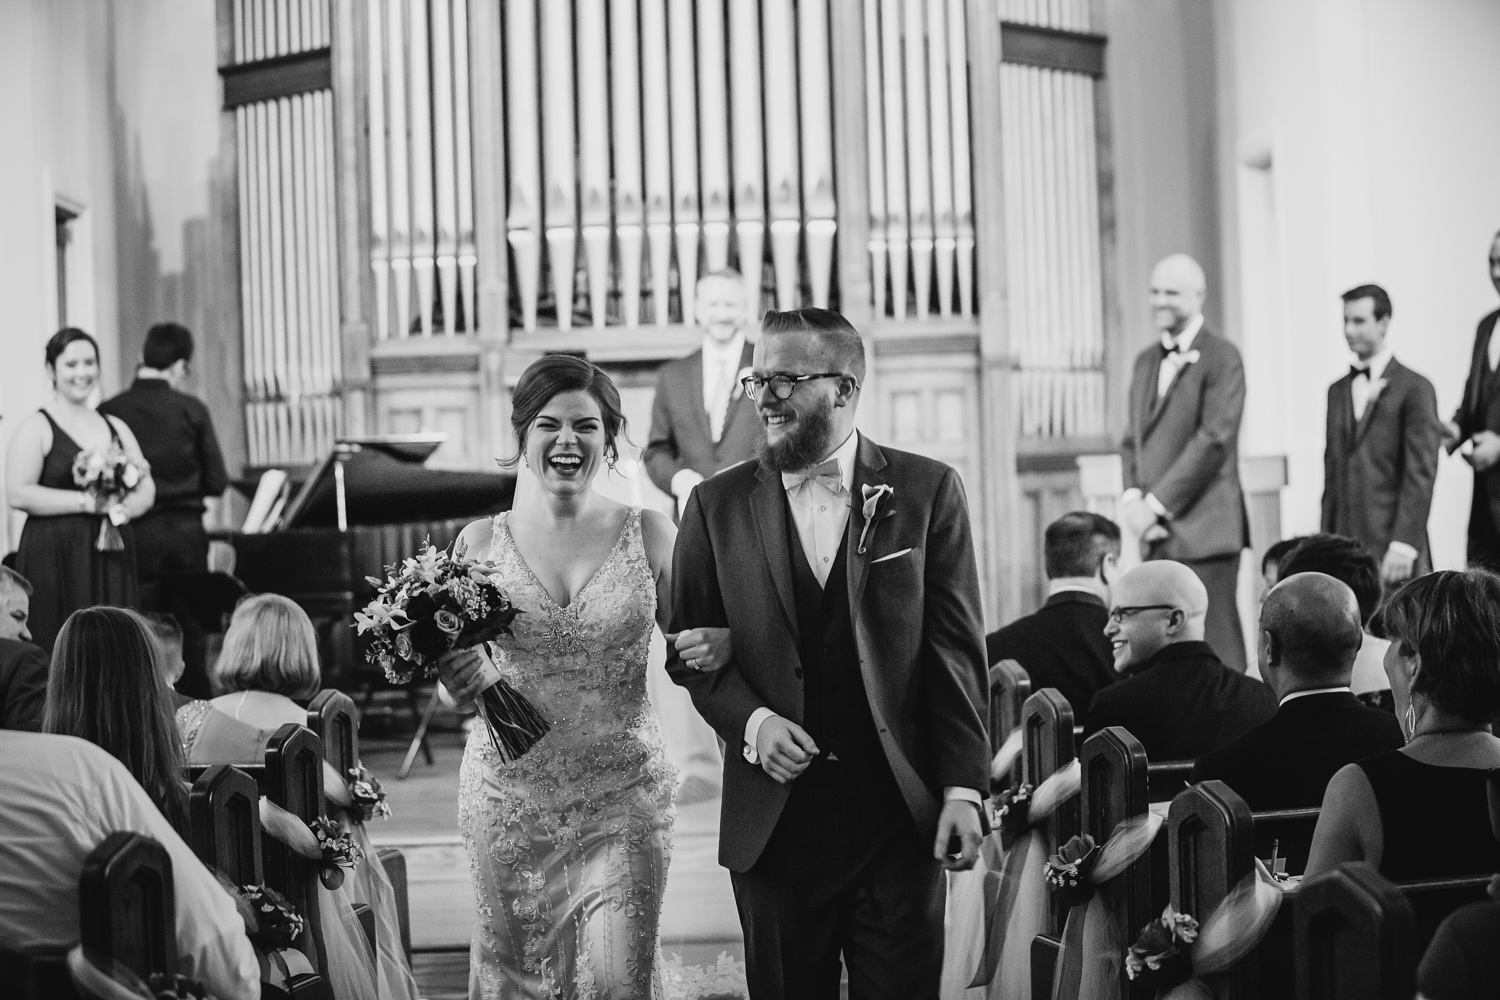 Newlyweds smile as they walk down aisle